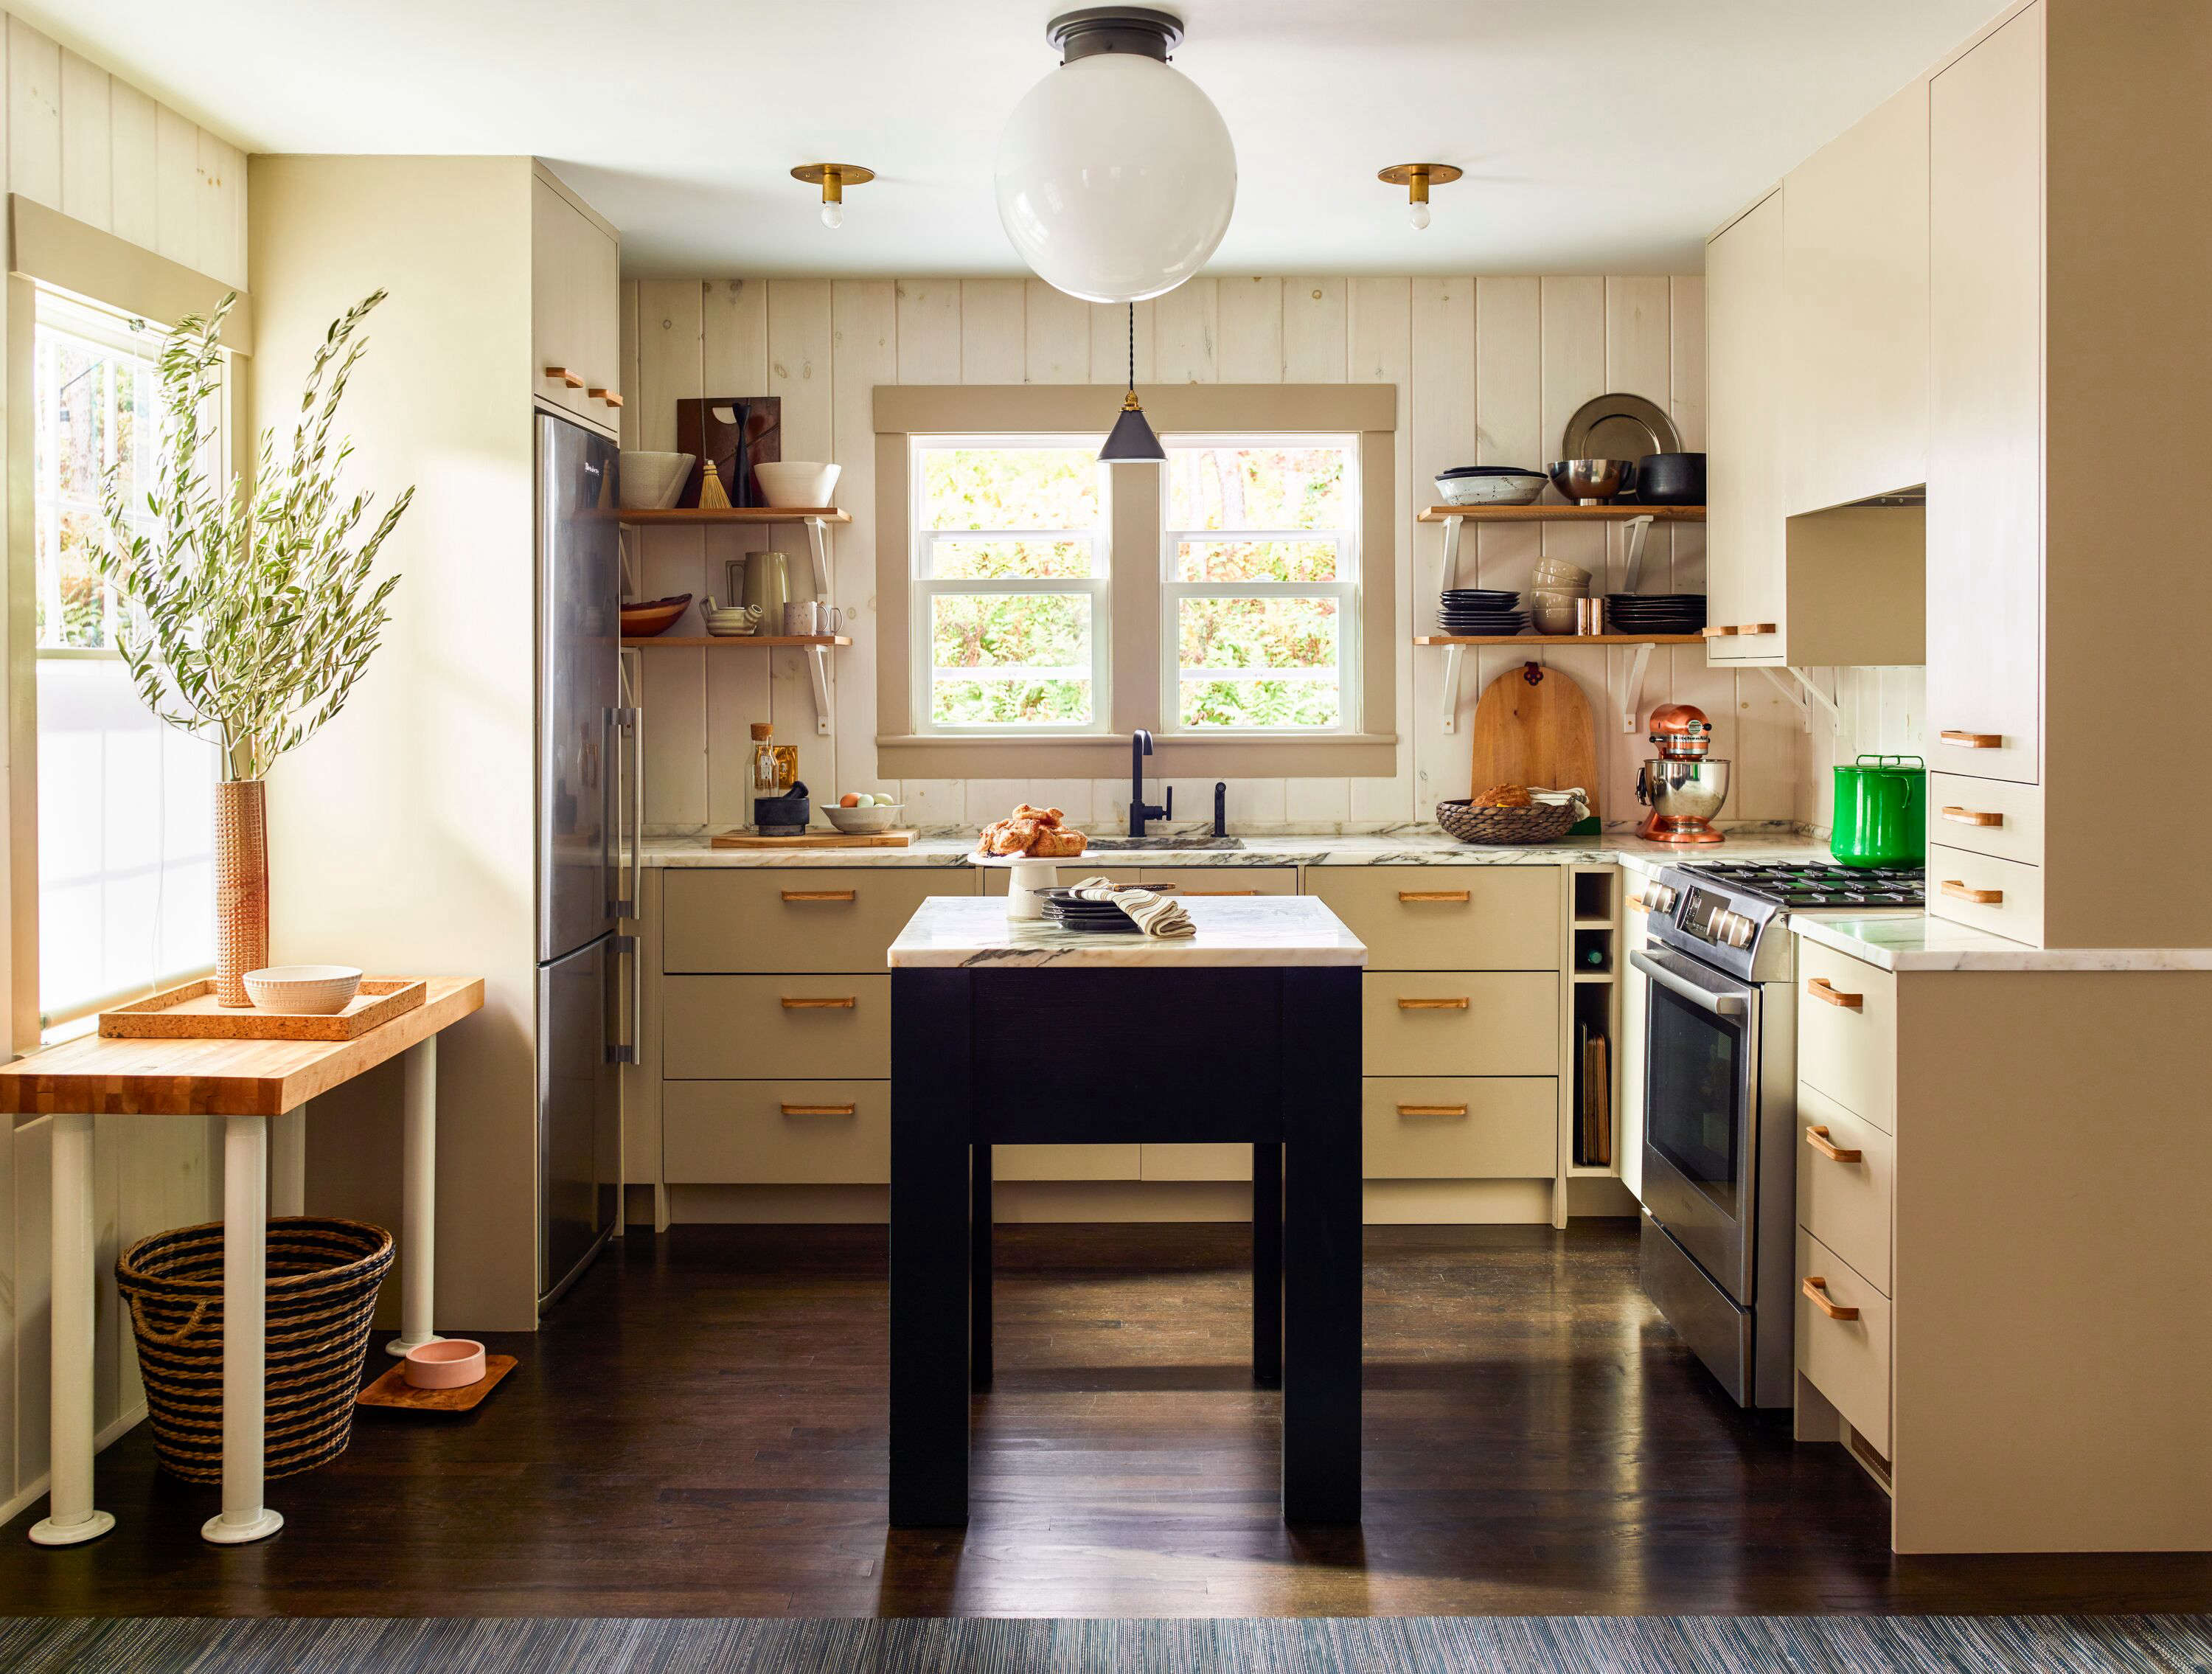 Steal This Look: The Design-Minded Country Kitchen, Budget Edition - Remodelista